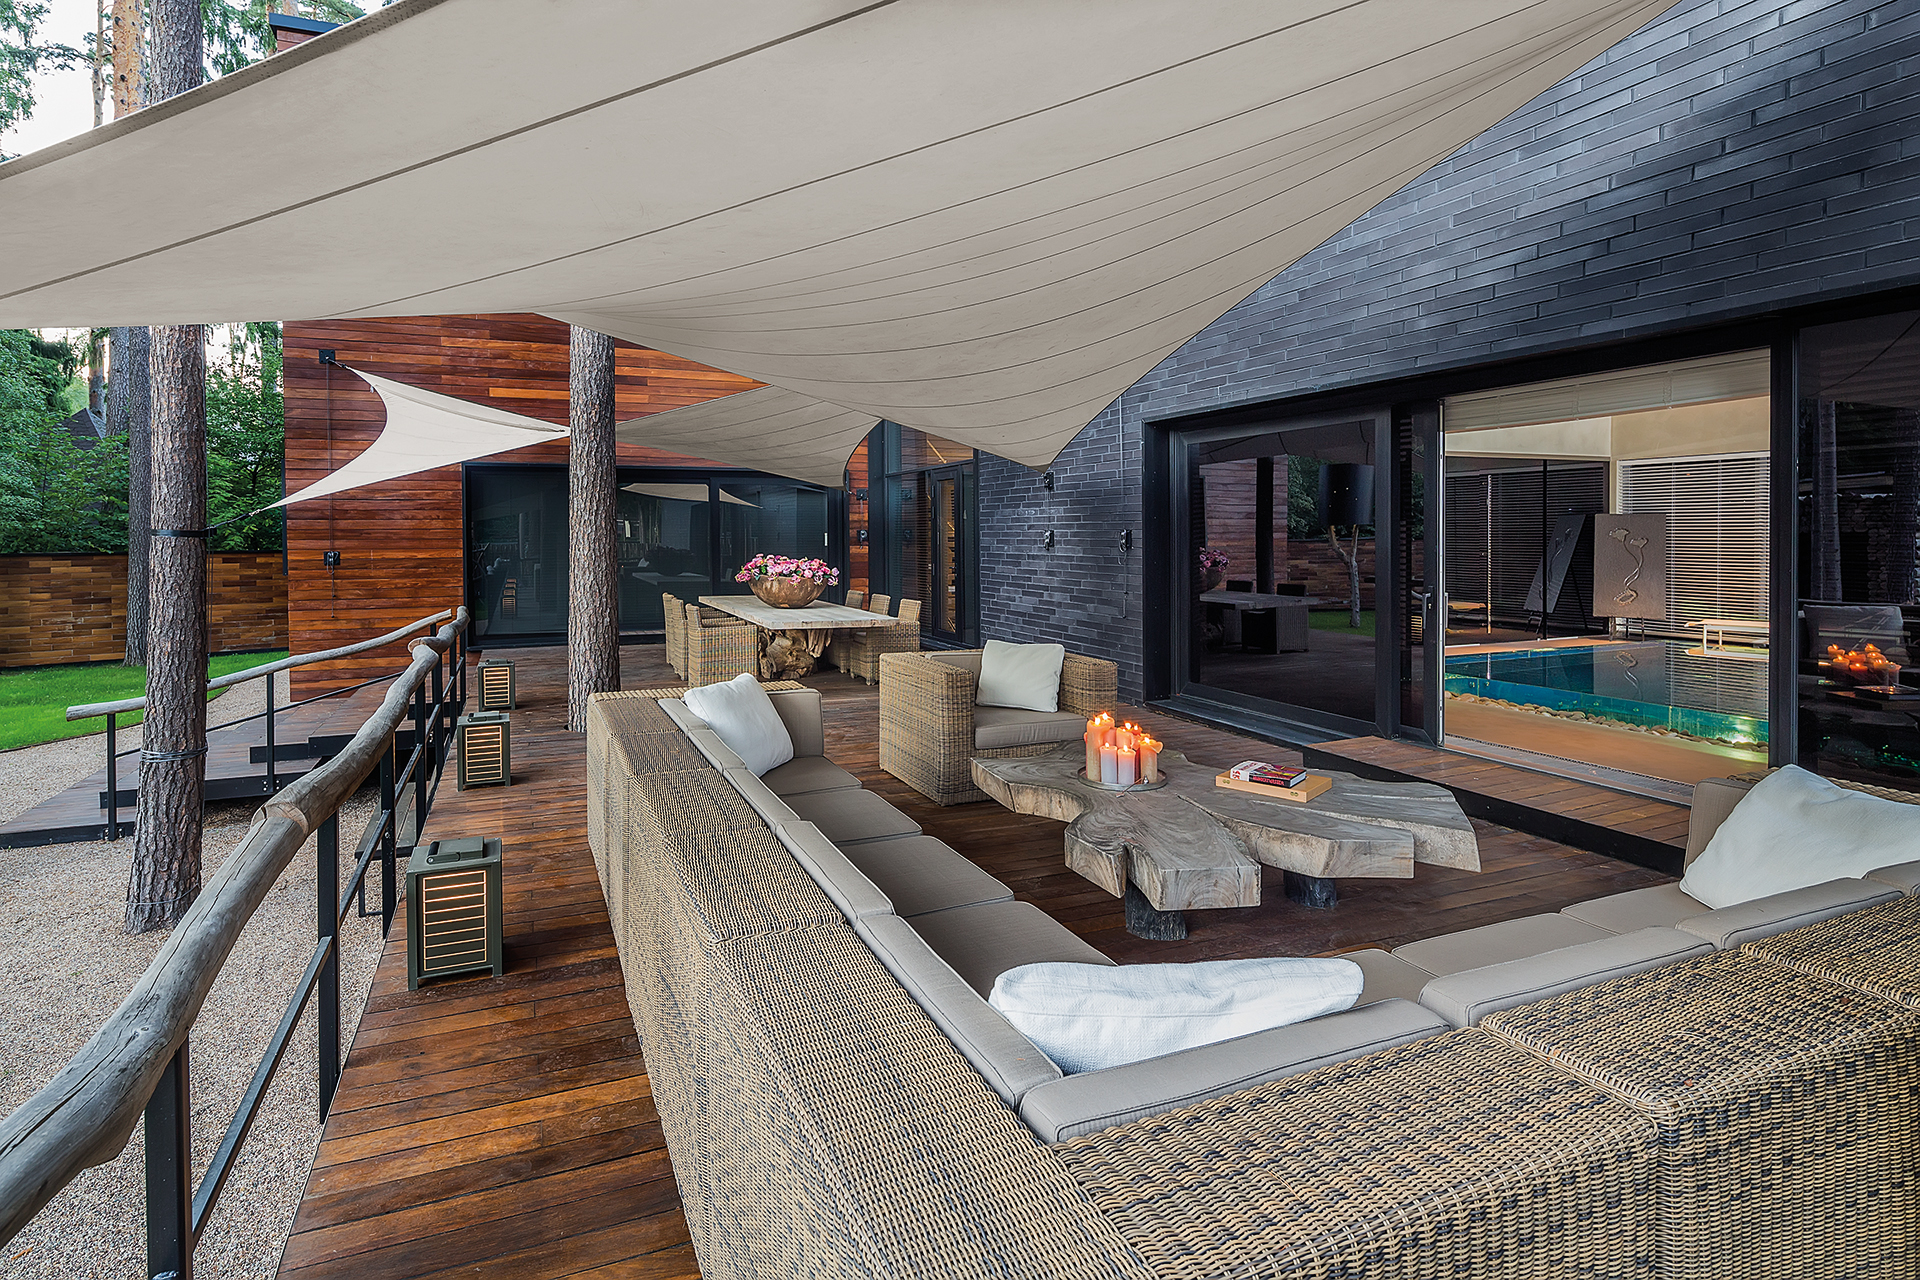 backyard patio with a tree trunk table and sail like parasols overhead